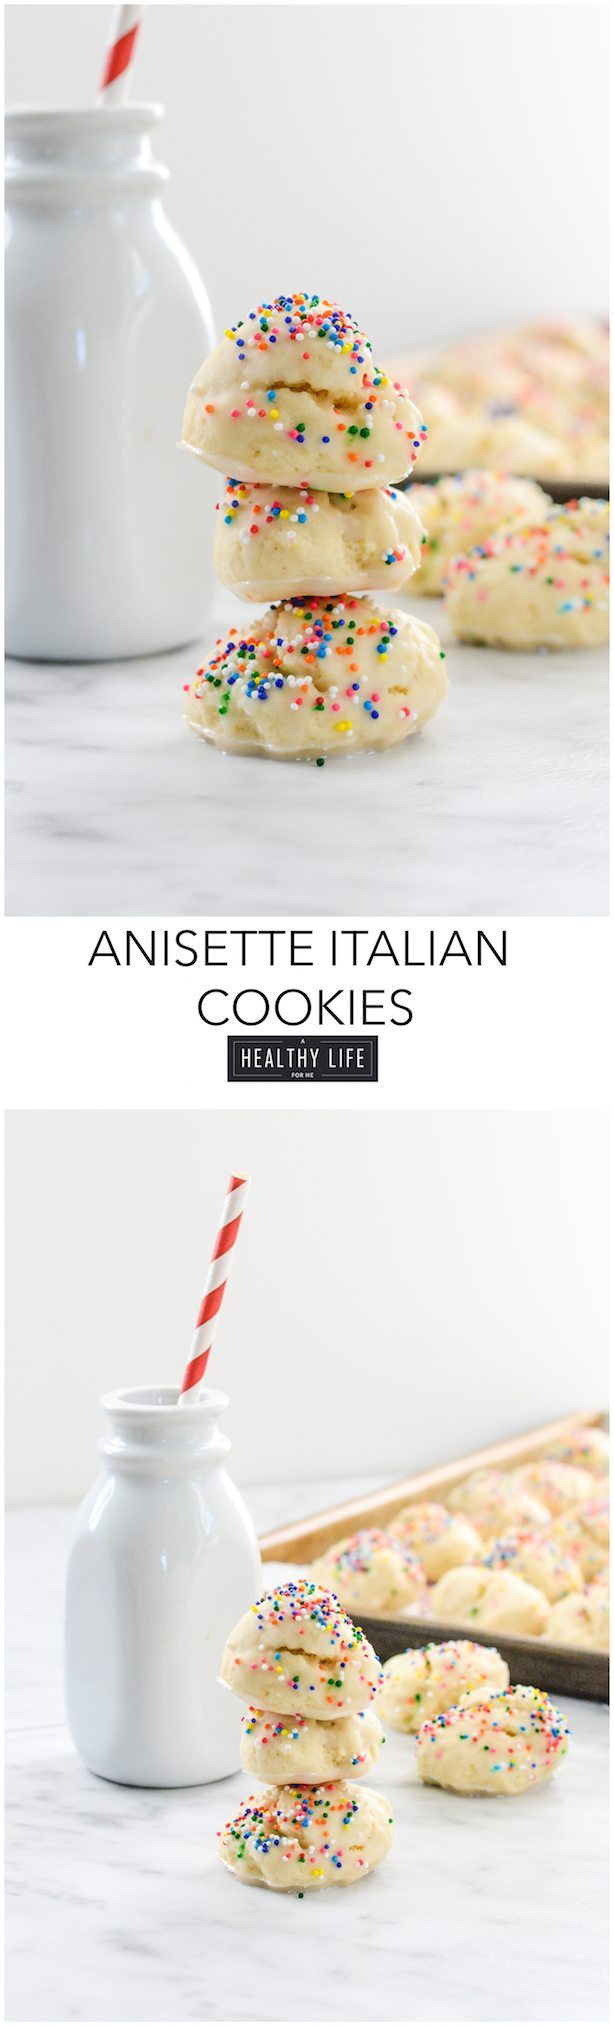 ANISETTE ITALIAN COOKIES A HEALTHY LIFE FOR ME